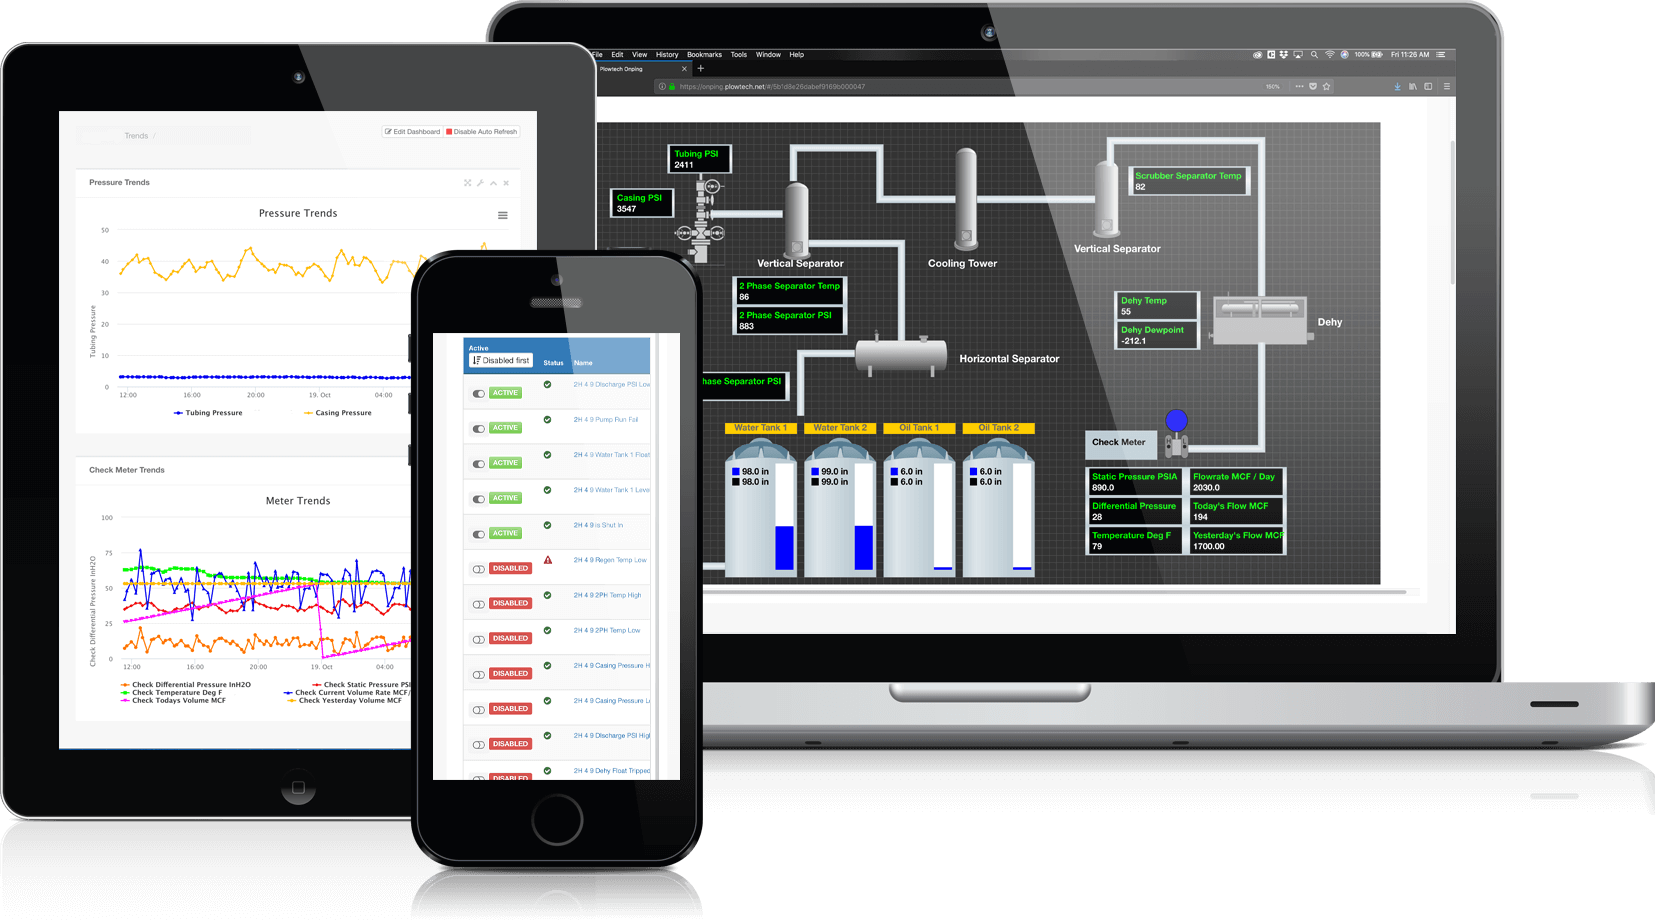 OnPing SCADA Trending Data, Alarms and HMI Screens for Mobile and Desktop